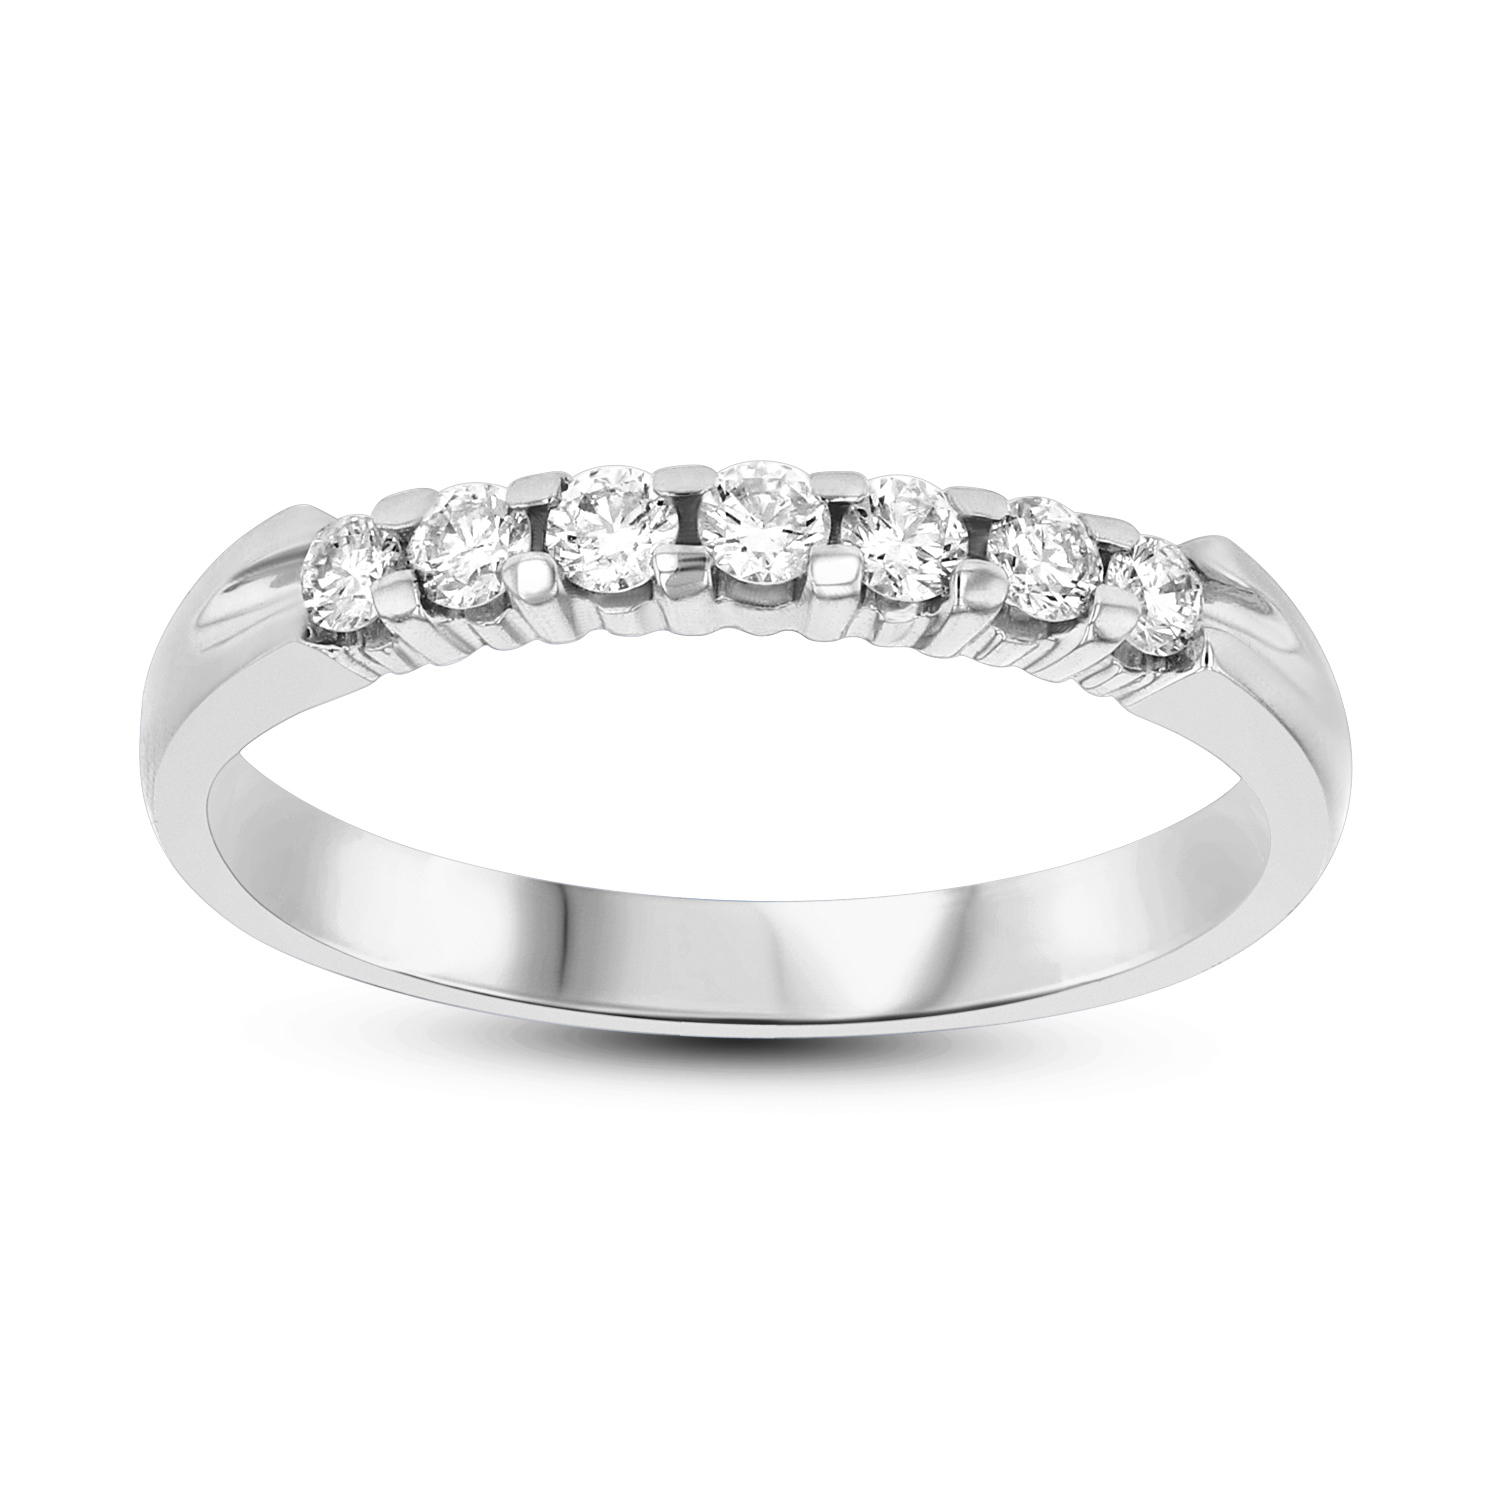 View 0.30ct tw 7 Stone Round Diamonds Shared Prong Anniversary or Wedding Band 14k Gold Bridal Ring H-J, SI